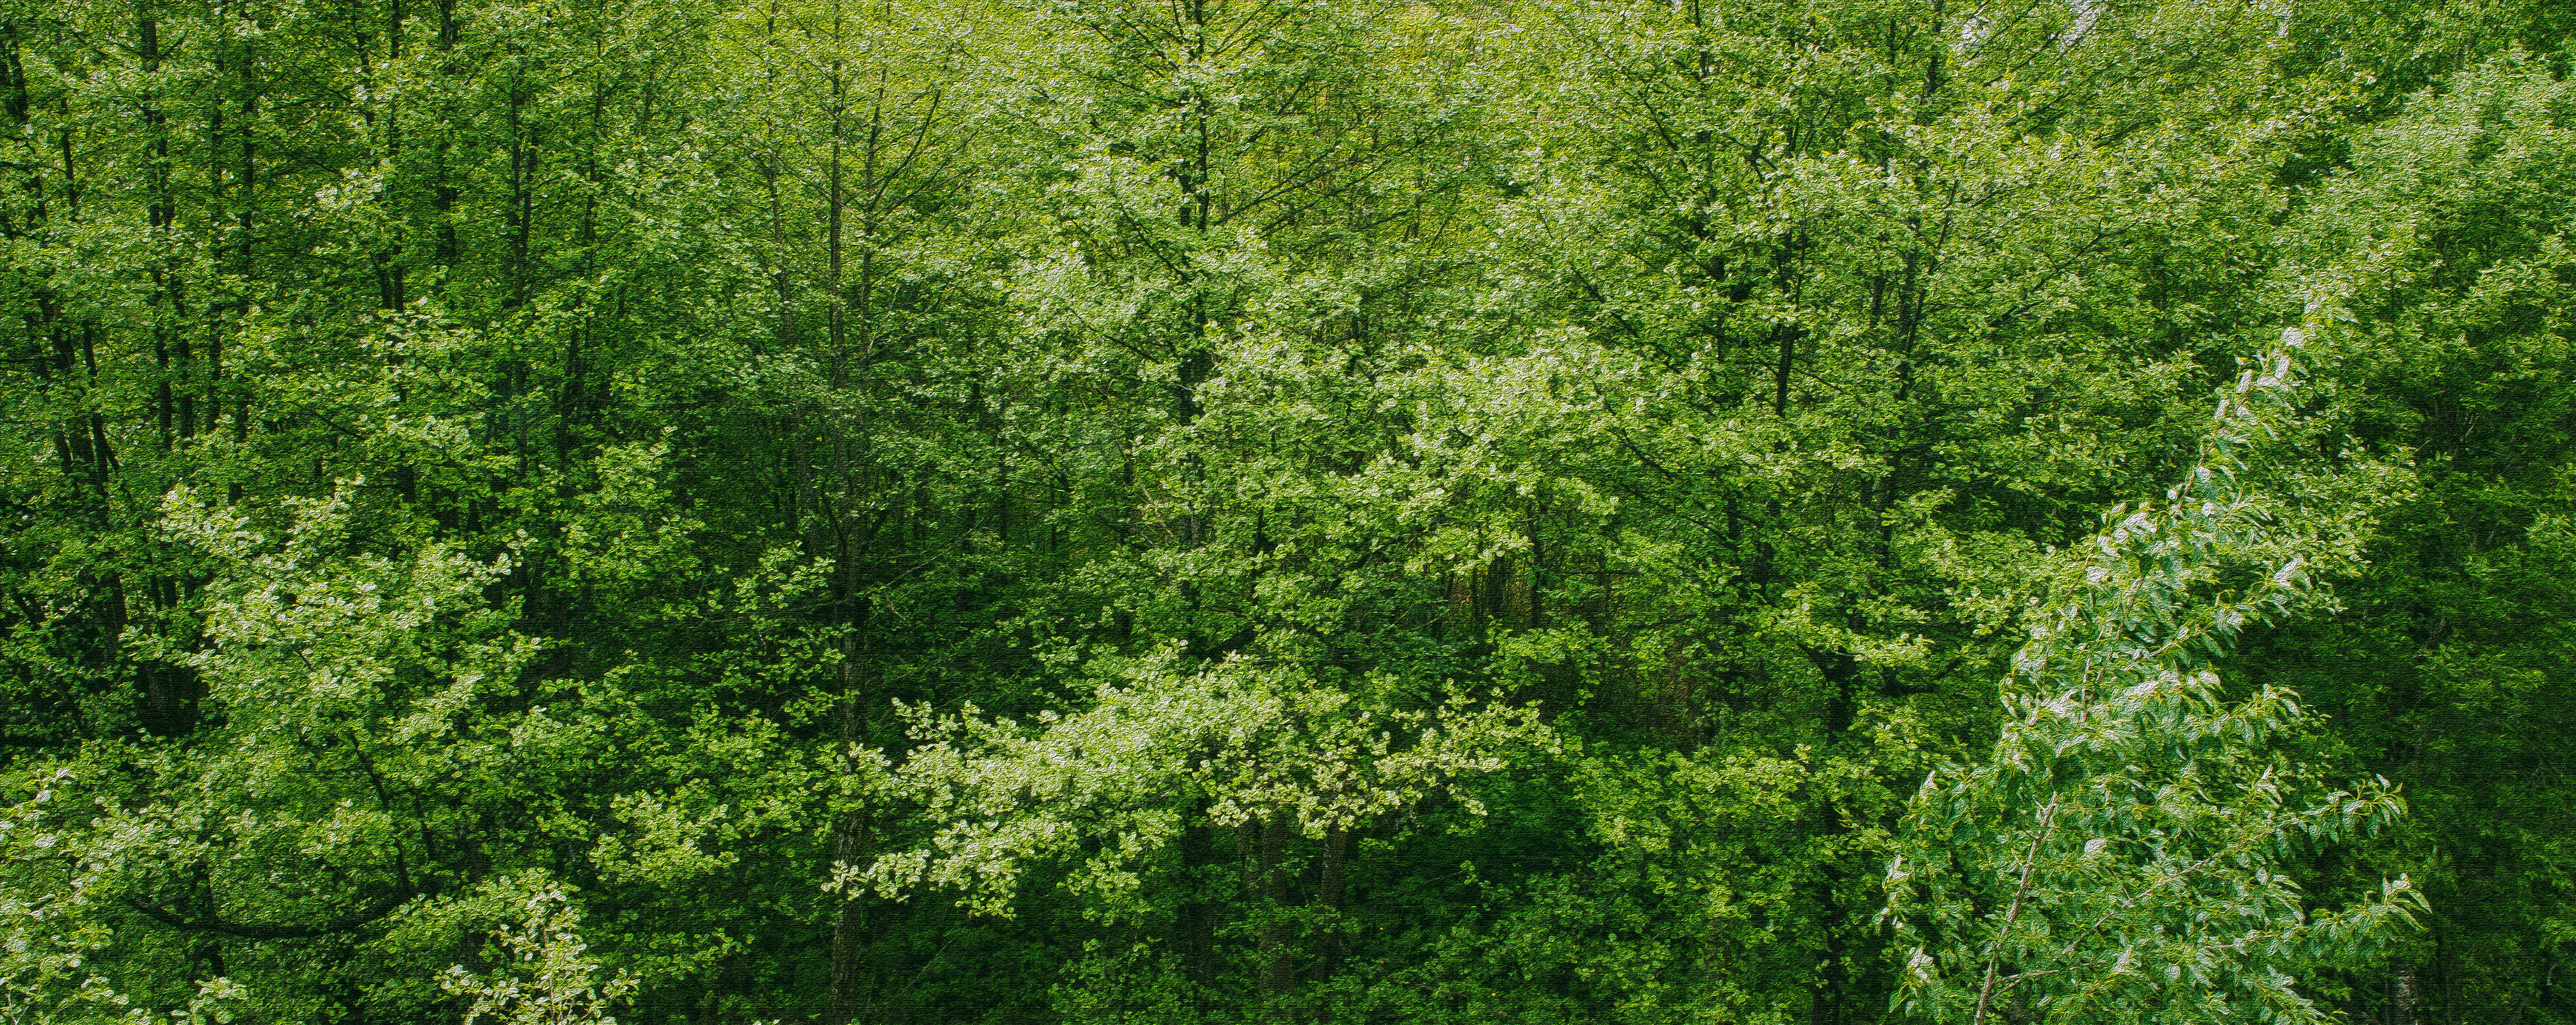 branches-daylight-environment-230978